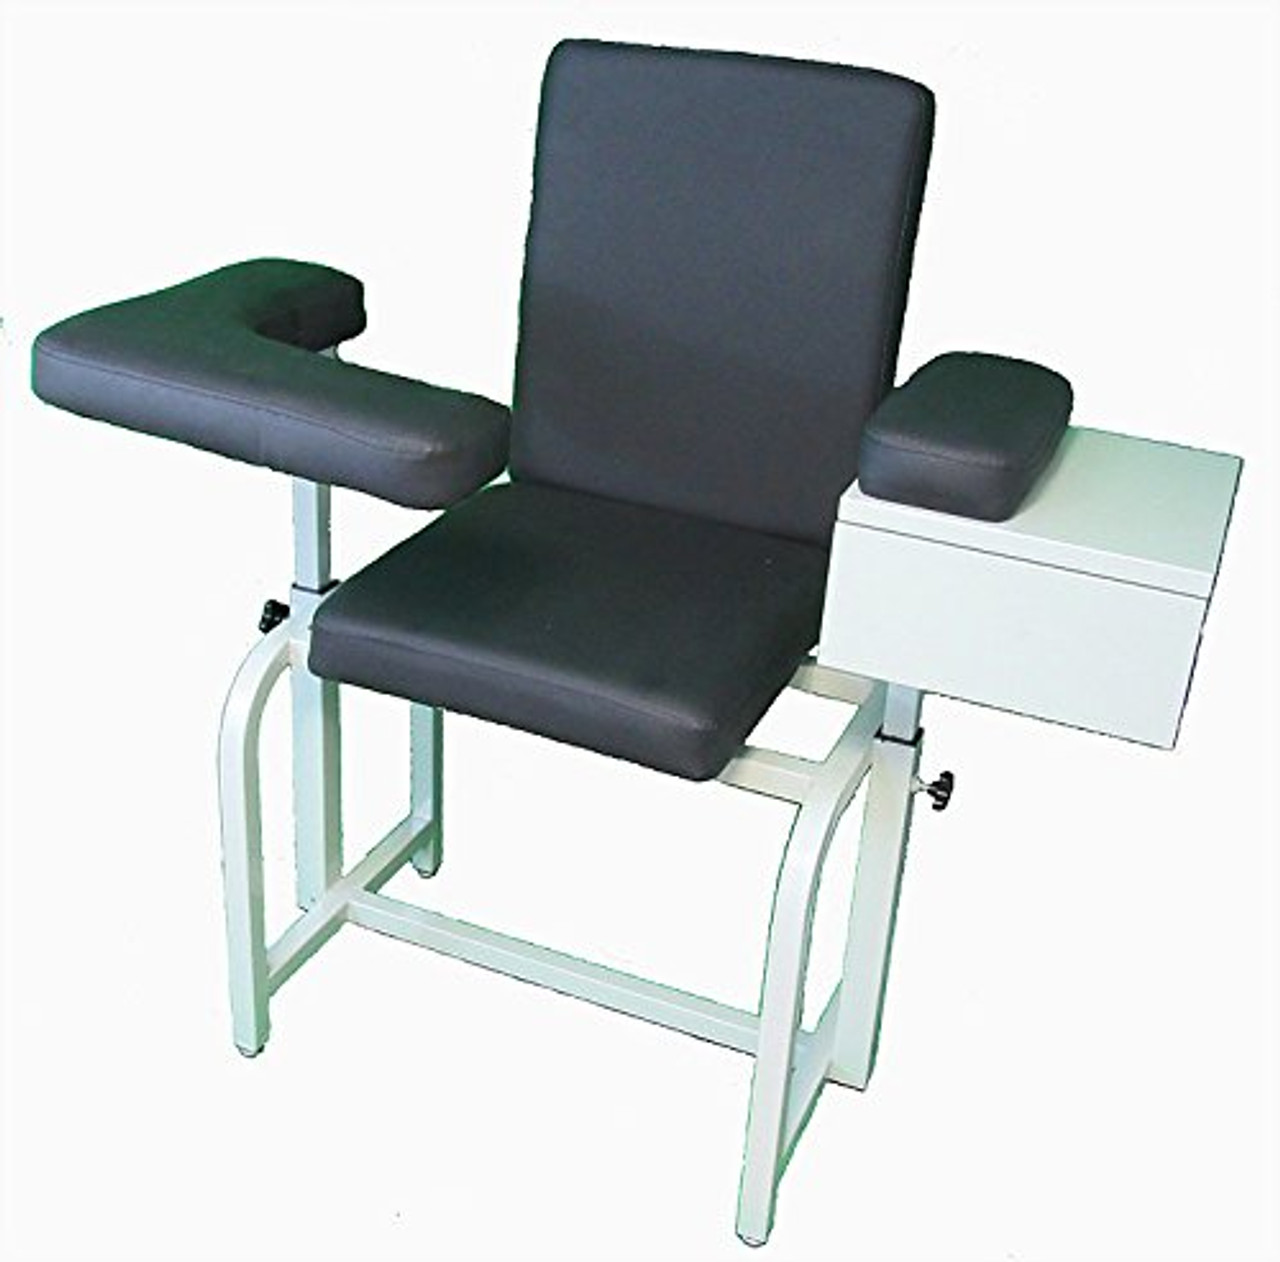 Surprising Phlebotomy Blood Chair With Free Drawer Upgrade Gunmetal Gray Theyellowbook Wood Chair Design Ideas Theyellowbookinfo